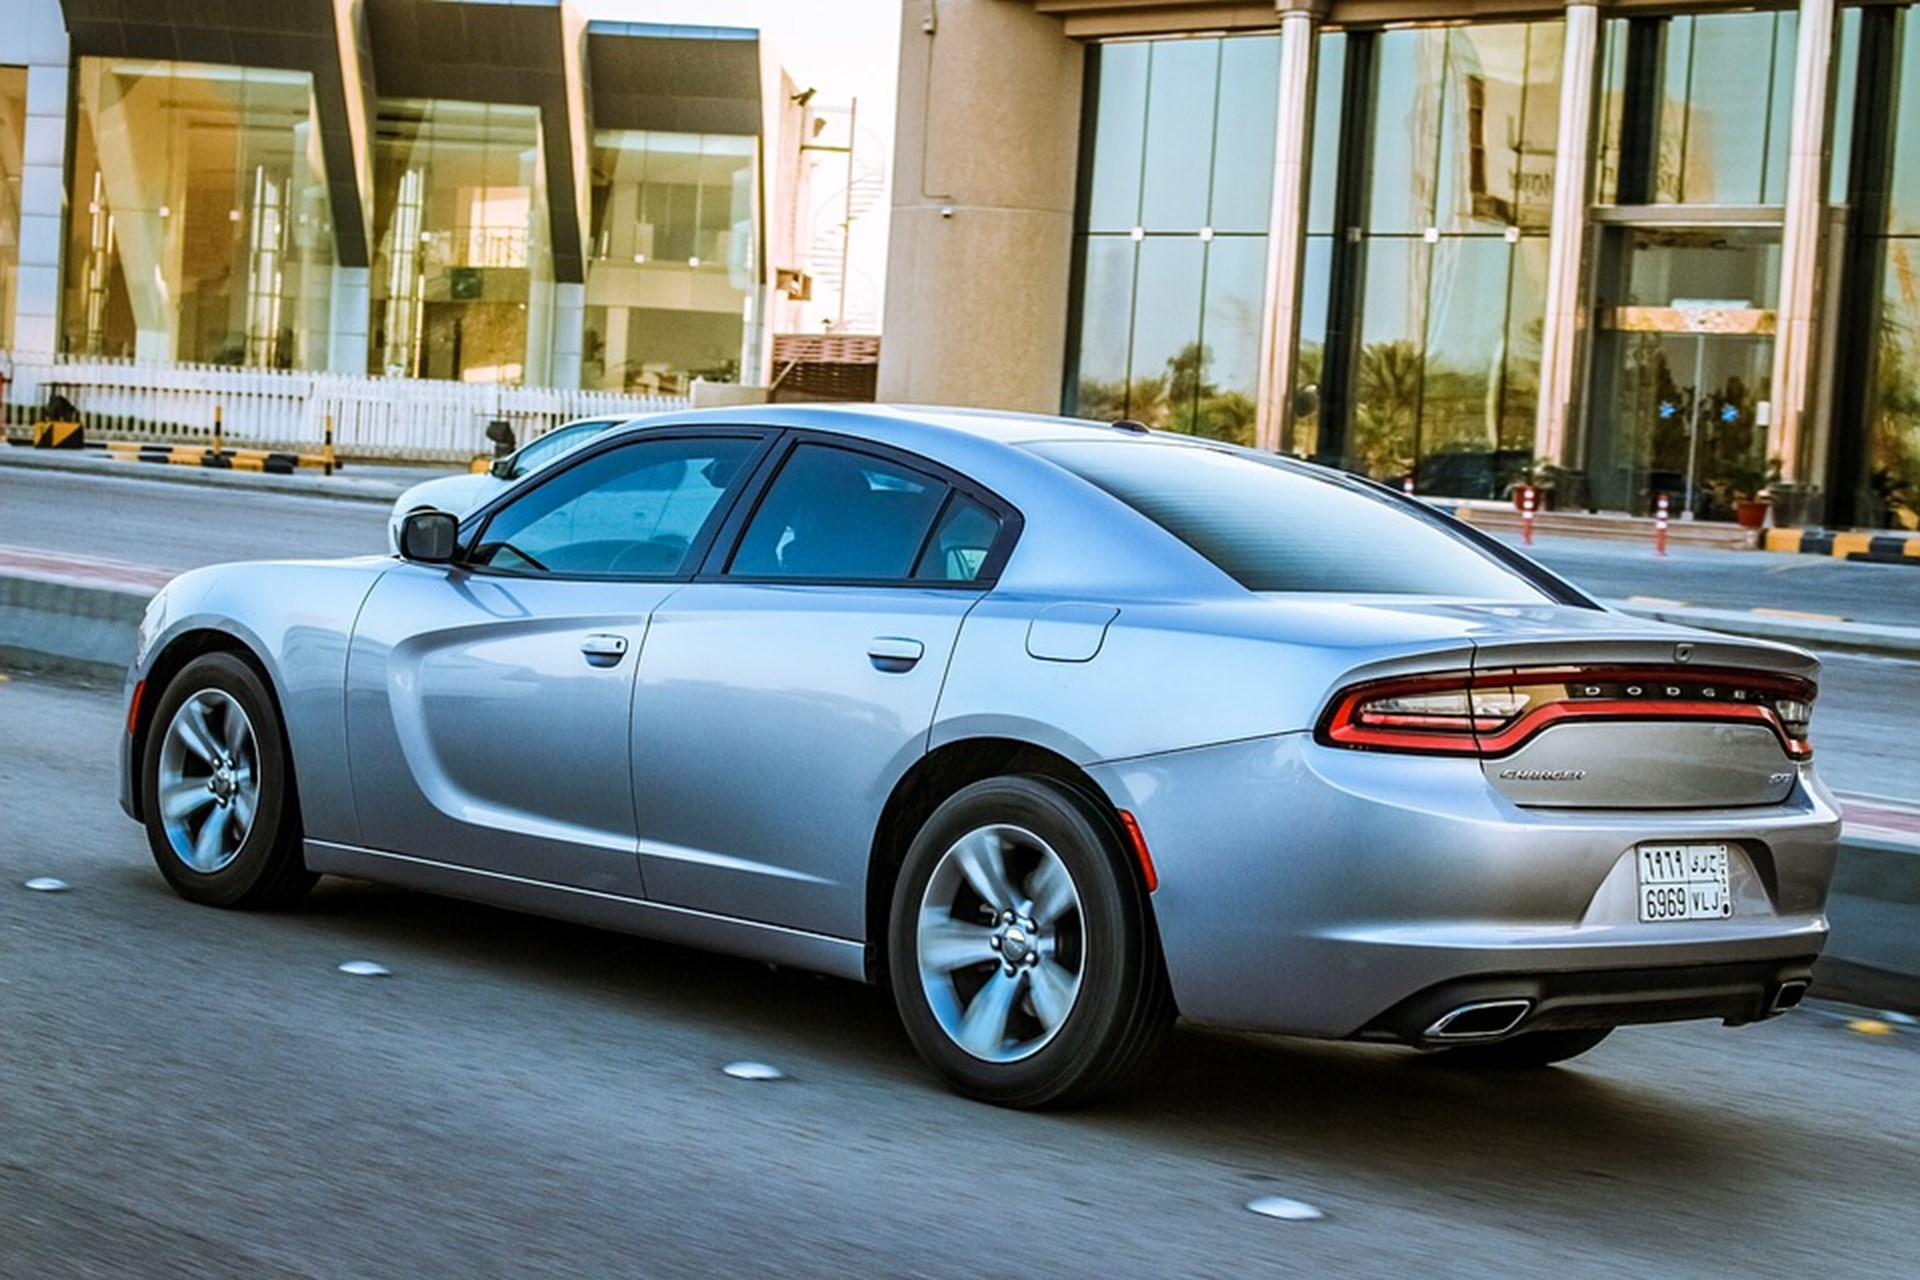 Dodge Charger And Cadillac Xts Among Cars That Would Be Hit By